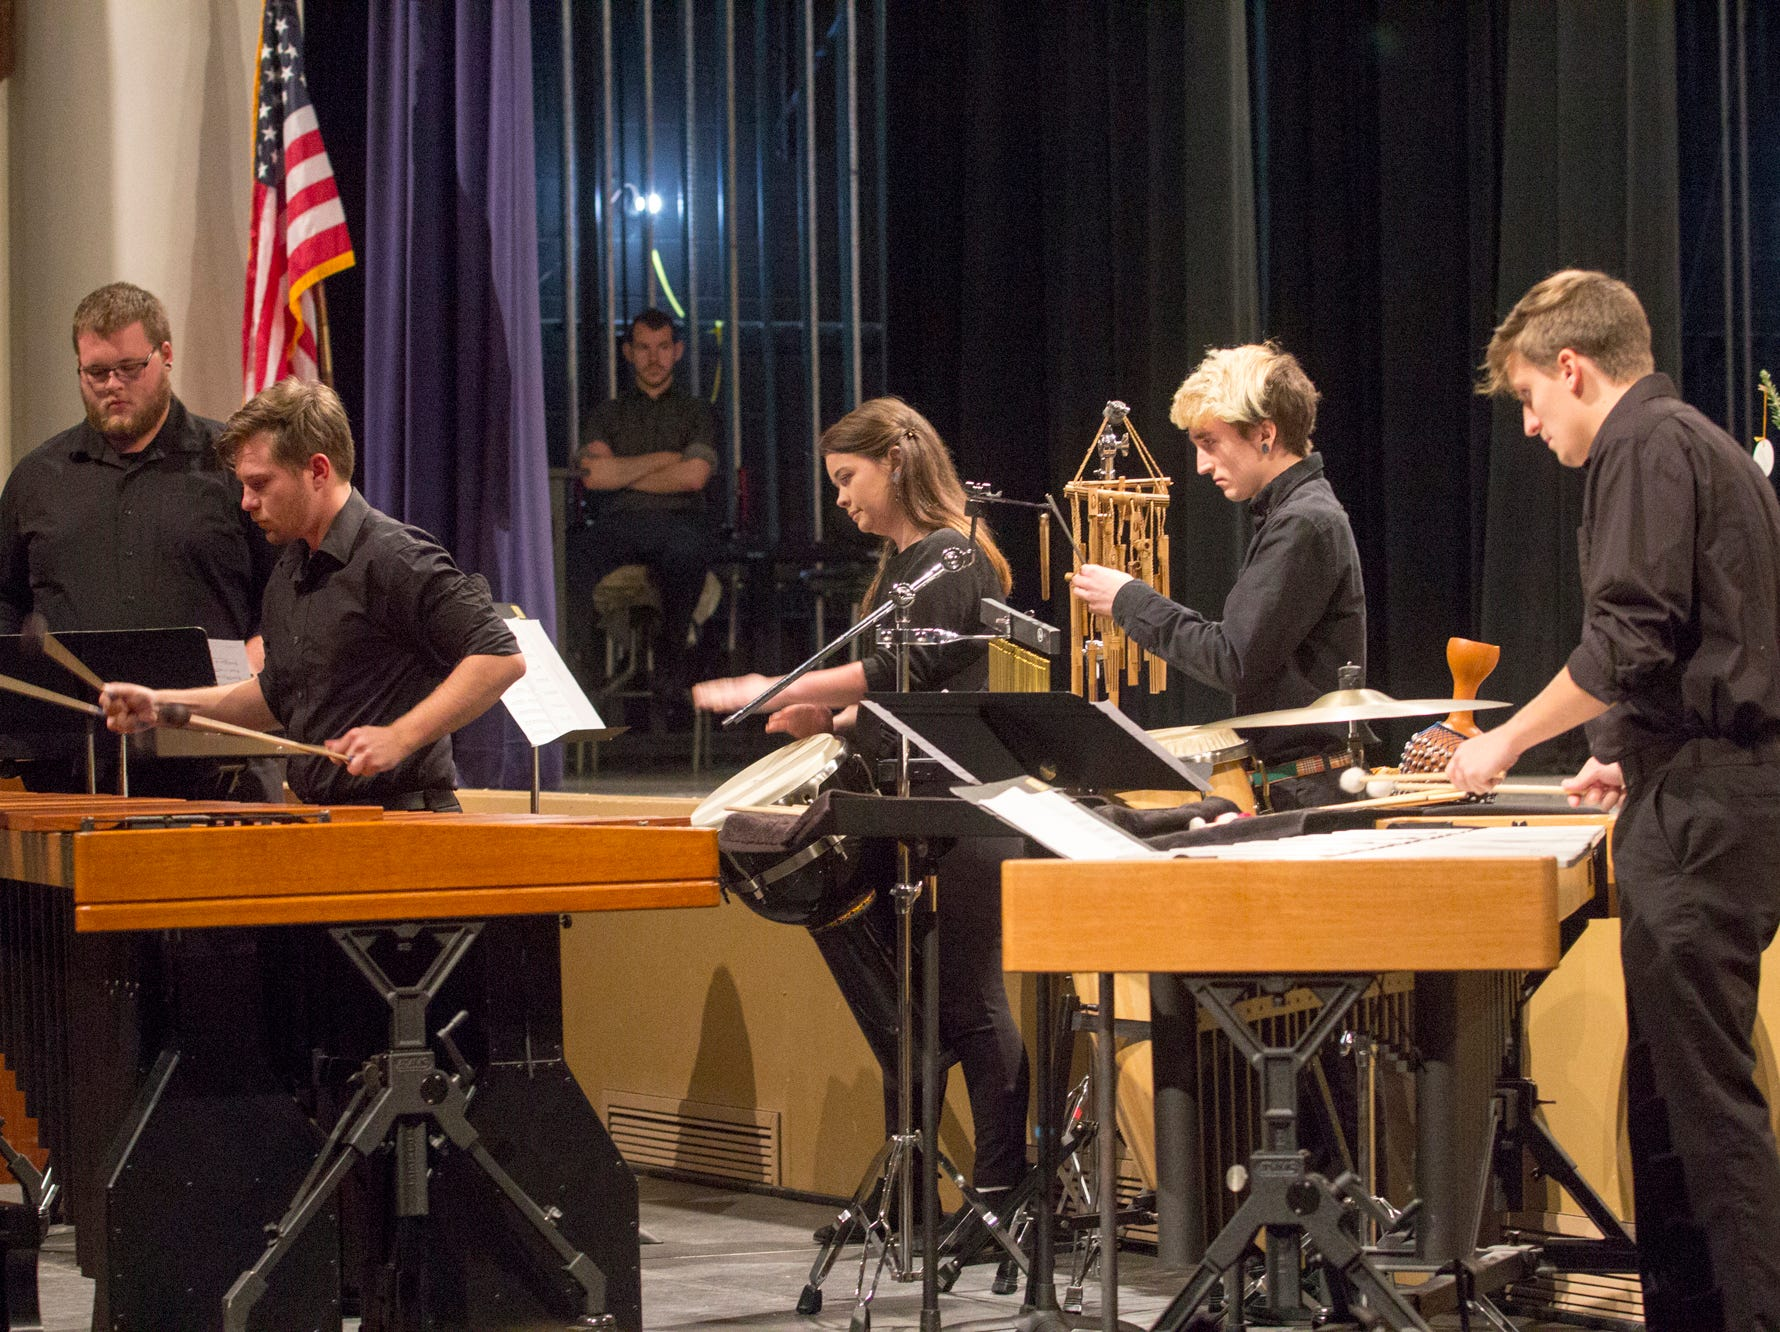 Members of the MHU Percussion Ensemble perform: Jordan McCrary, Luke Rathbone, Jordan Domangue, J.C. Calhoun, and Kendyl Robertson. Mars Hill University conferred bachelor's degrees on 71 graduates on Dec. 14, 2018.